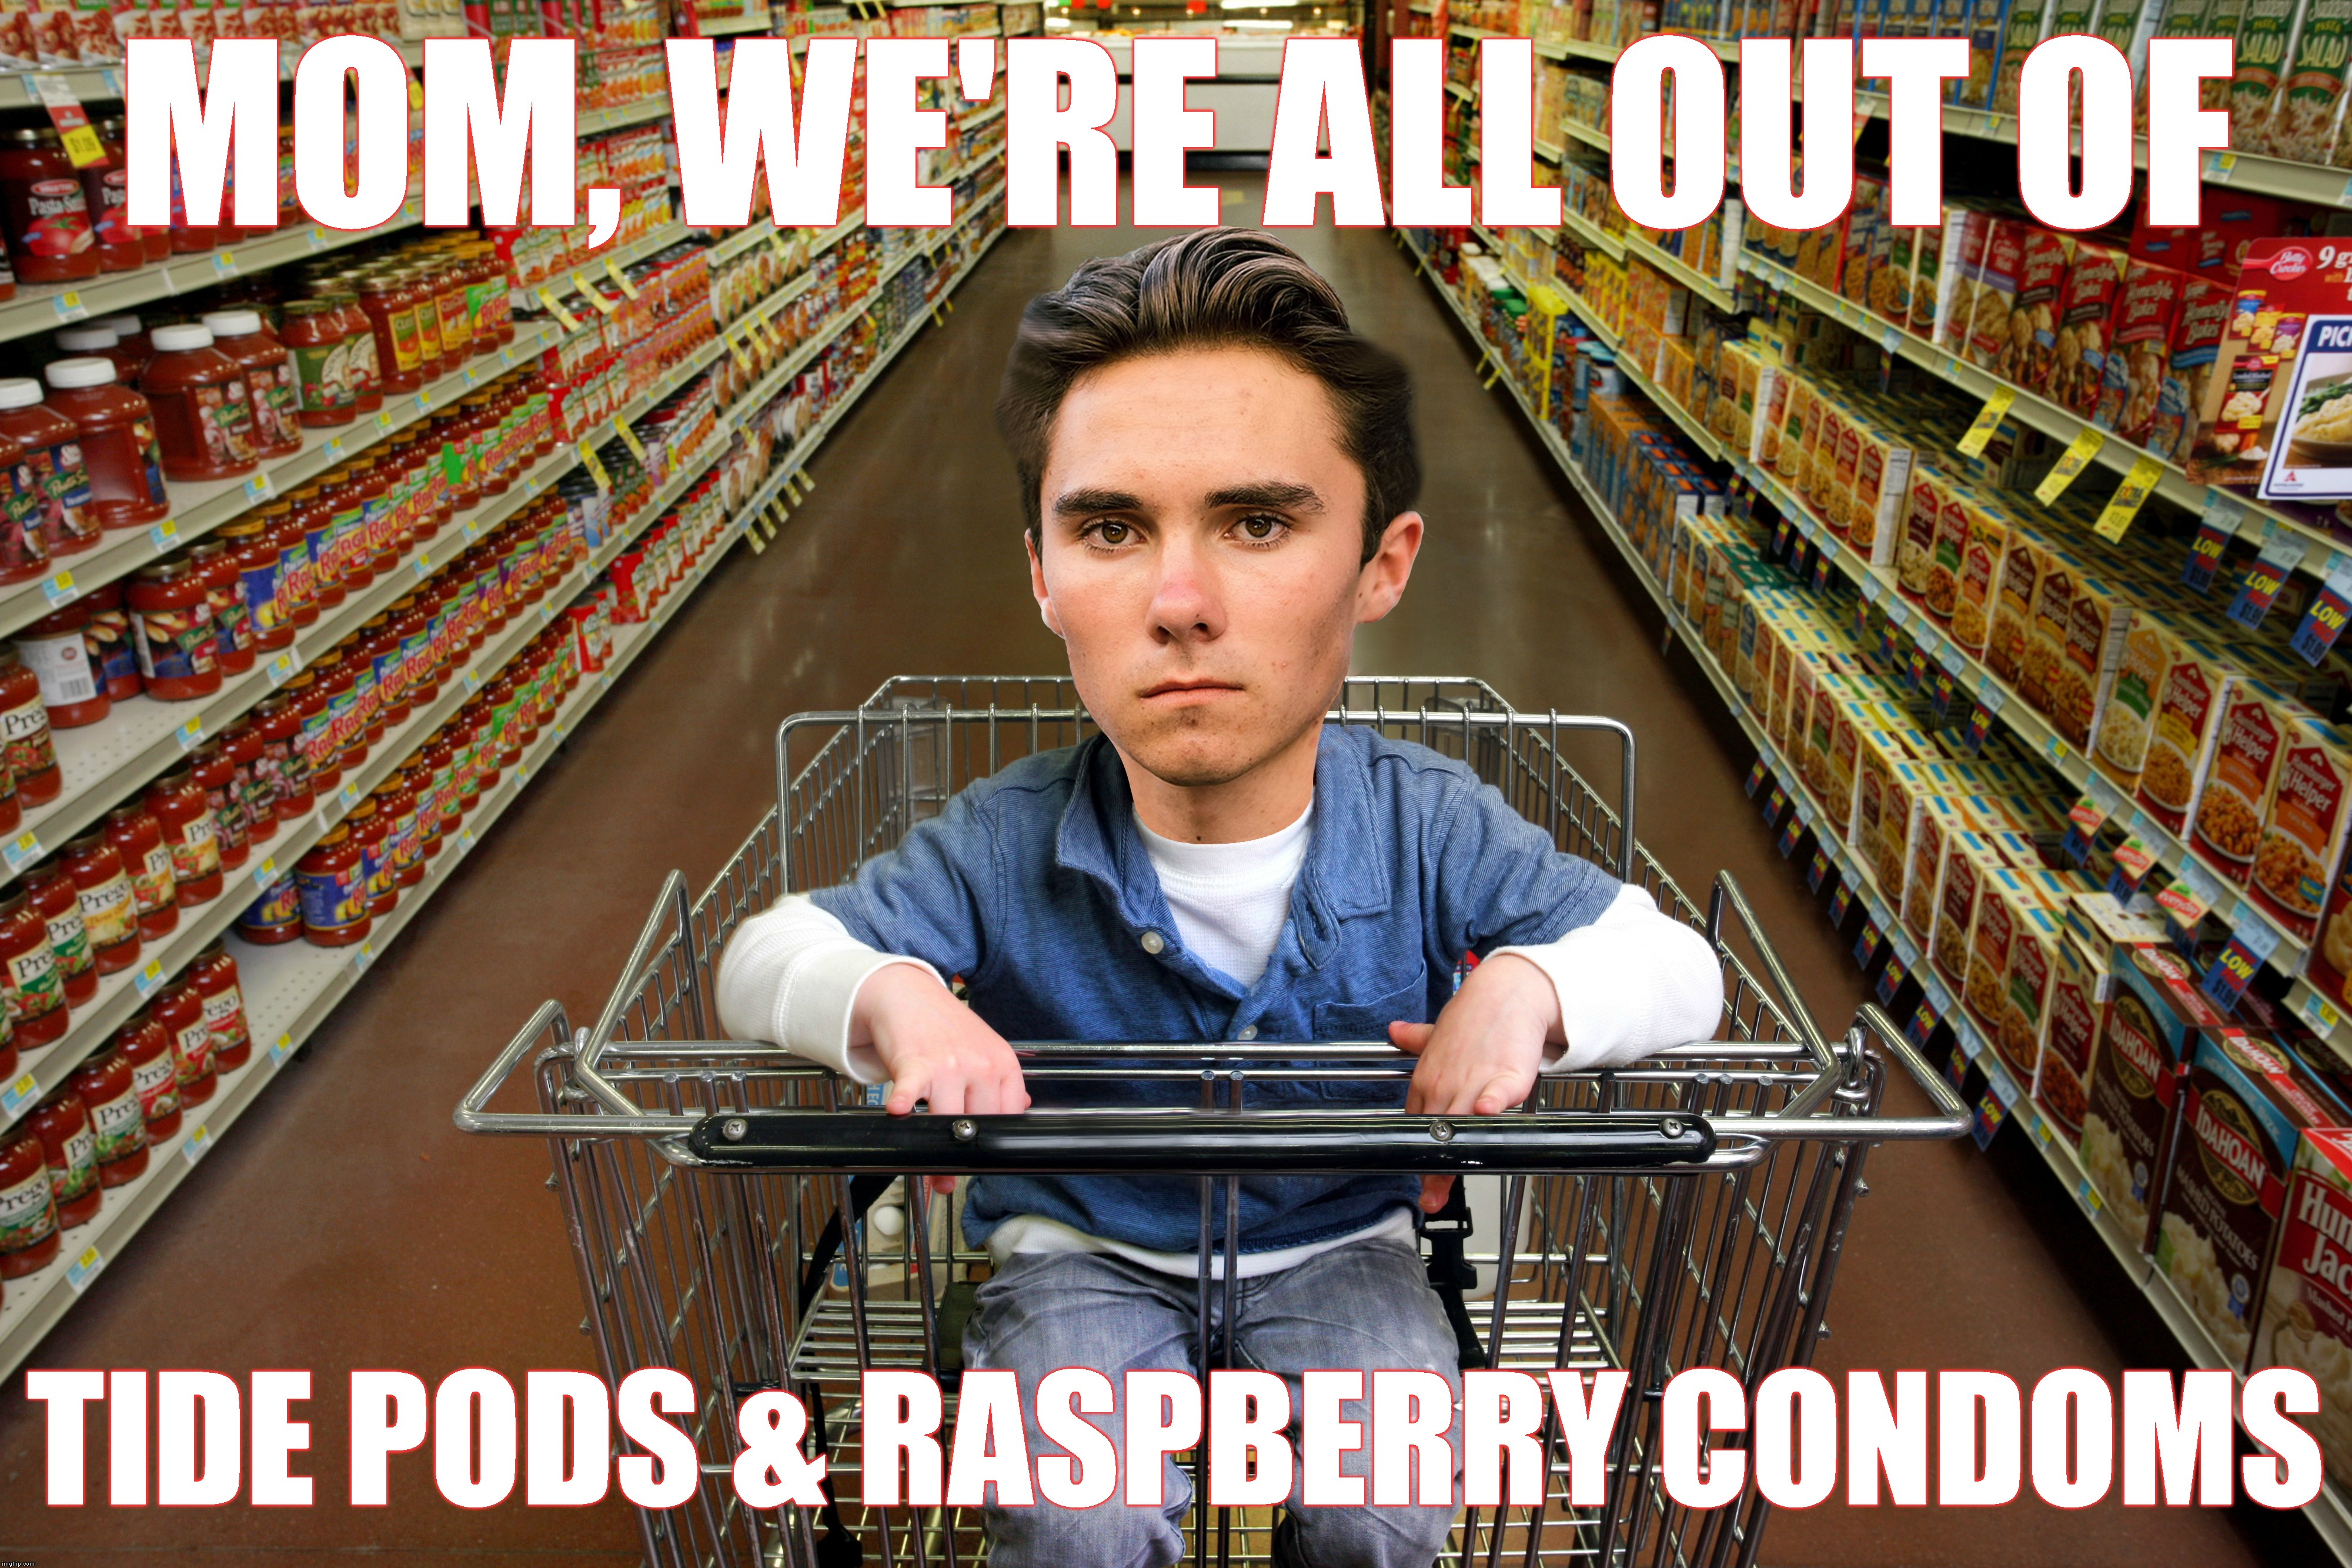 I Made An Improved Quality Version Of This Image After Finding This On The Interwebs | MOM, WE'RE ALL OUT OF TIDE PODS & RASPBERRY CONDOMS | image tagged in david hogg,tide pods,condom challenge,liberals,stupid liberals,idiots | made w/ Imgflip meme maker